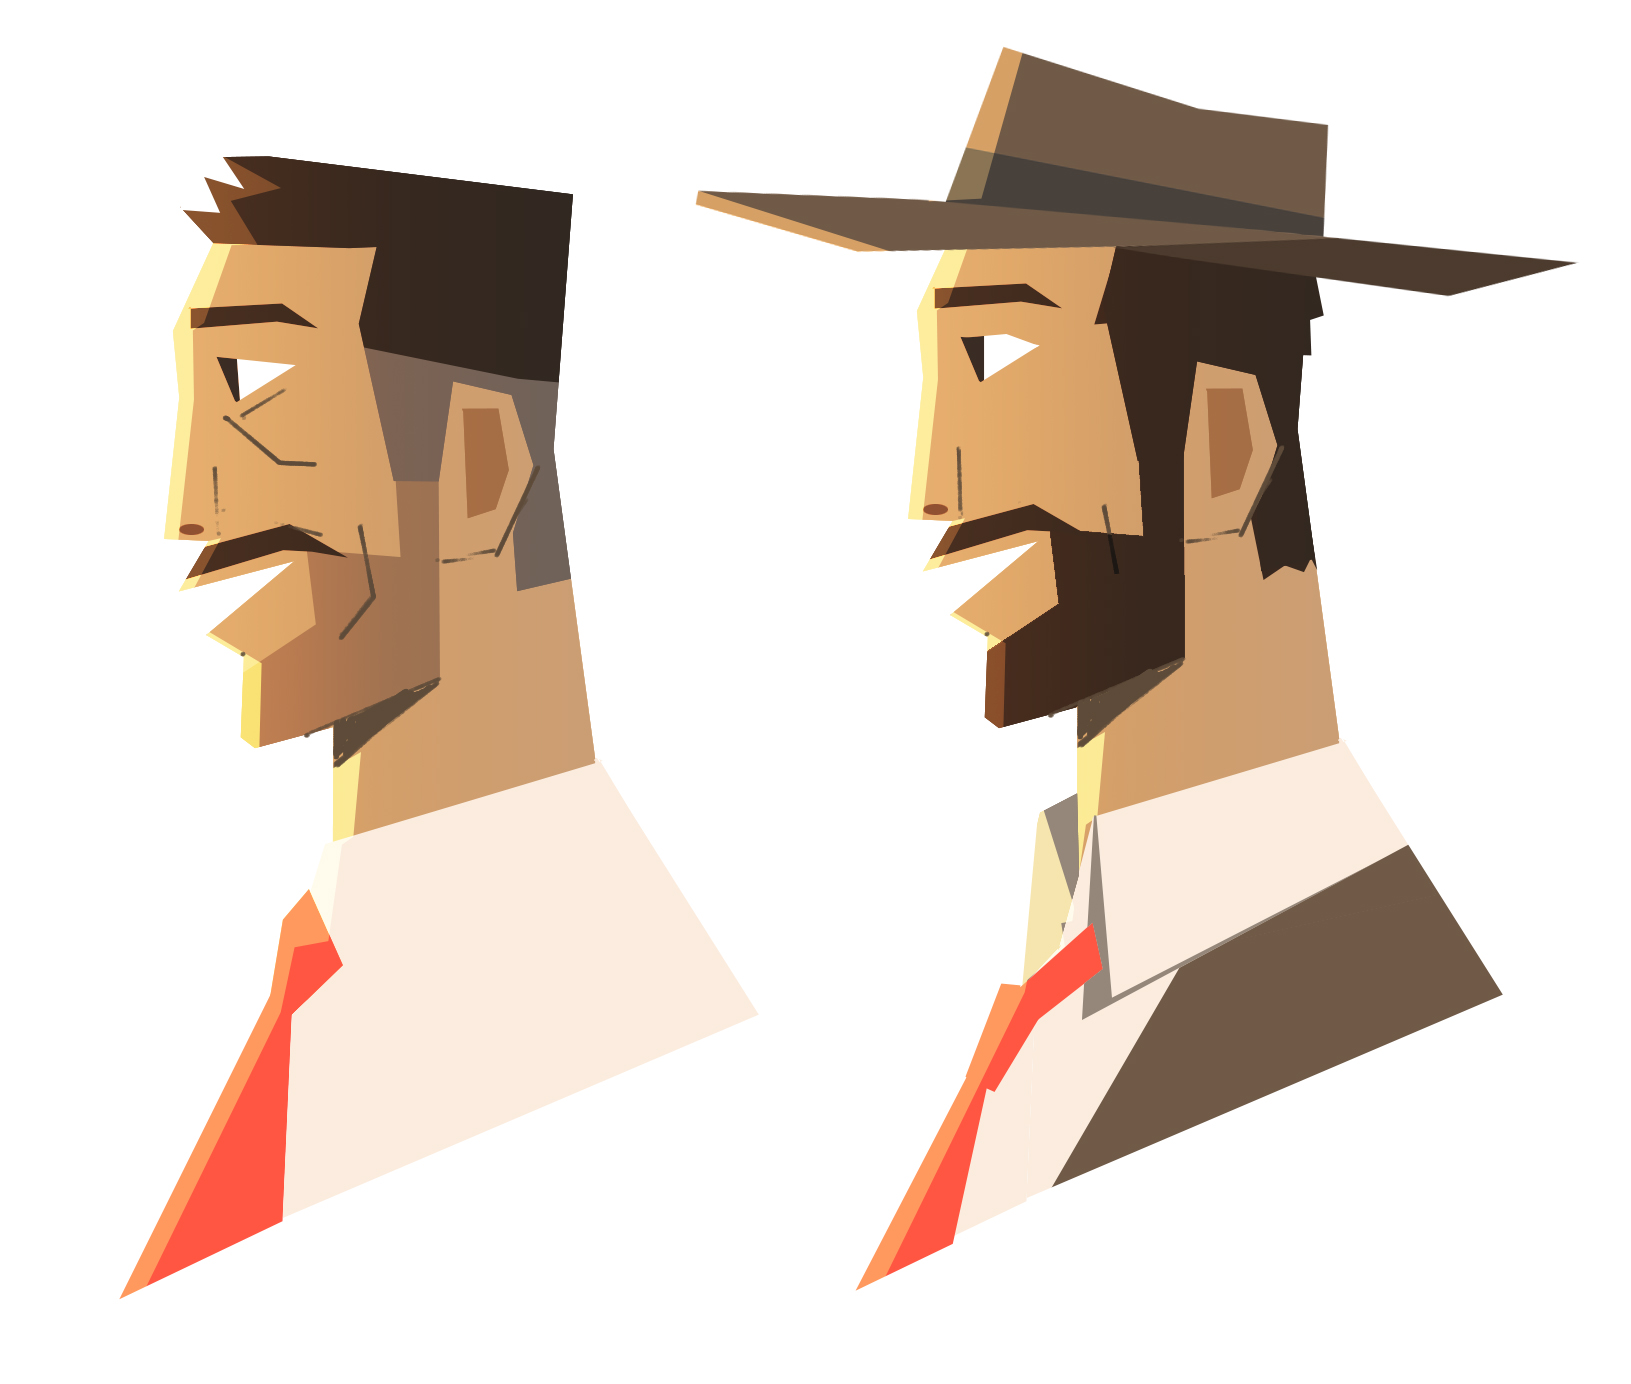 Explorations of an older and younger version of the Marlboro Man.